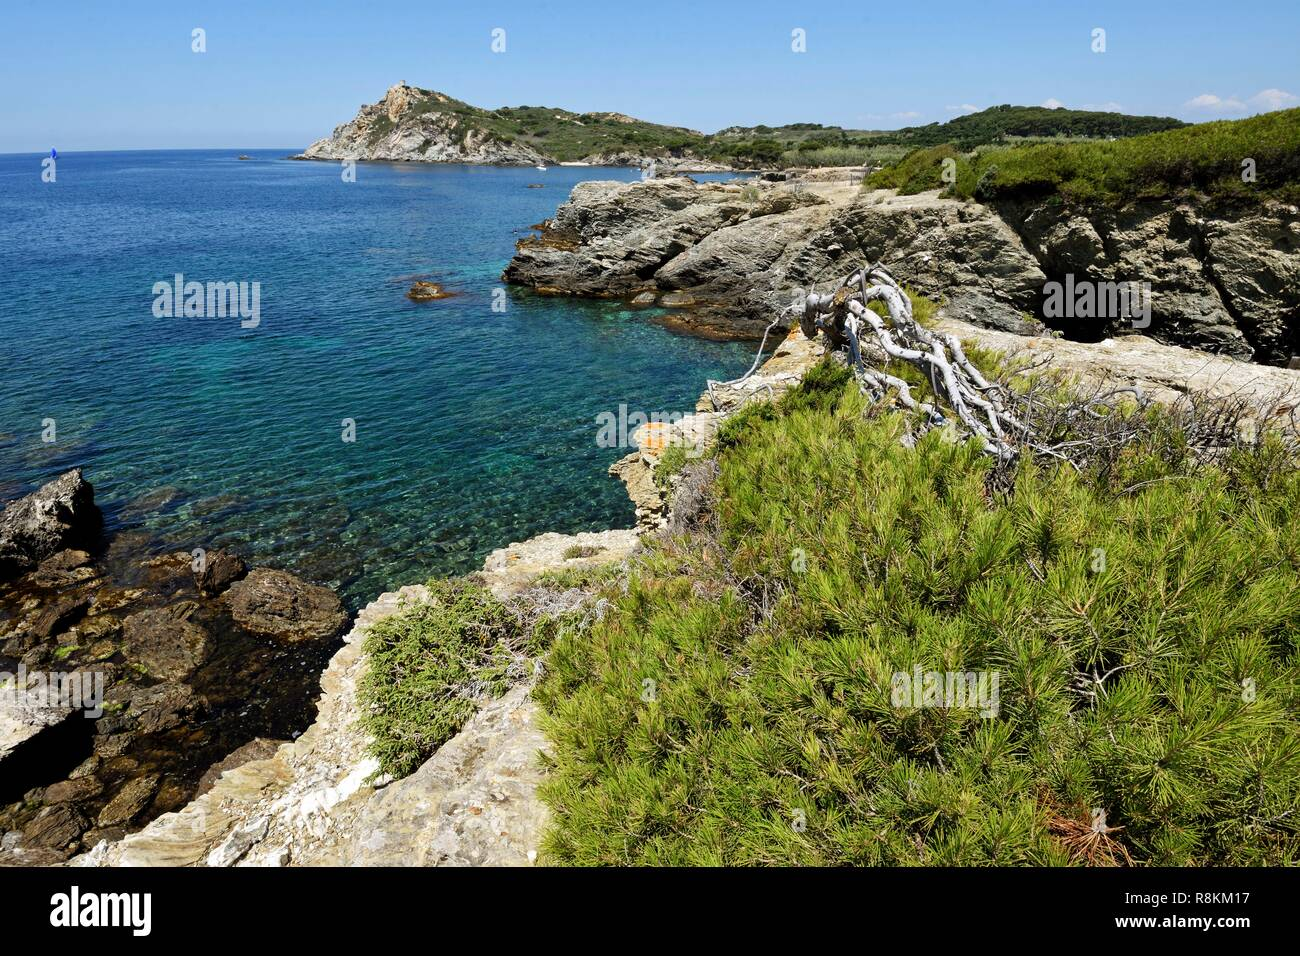 France, Var, Six Fours les Plages, Le Brusc, peninsula of Gaou, Alep pine (Pinus halepensis) lying down by the wind, sight on the island of Embiez - Stock Image